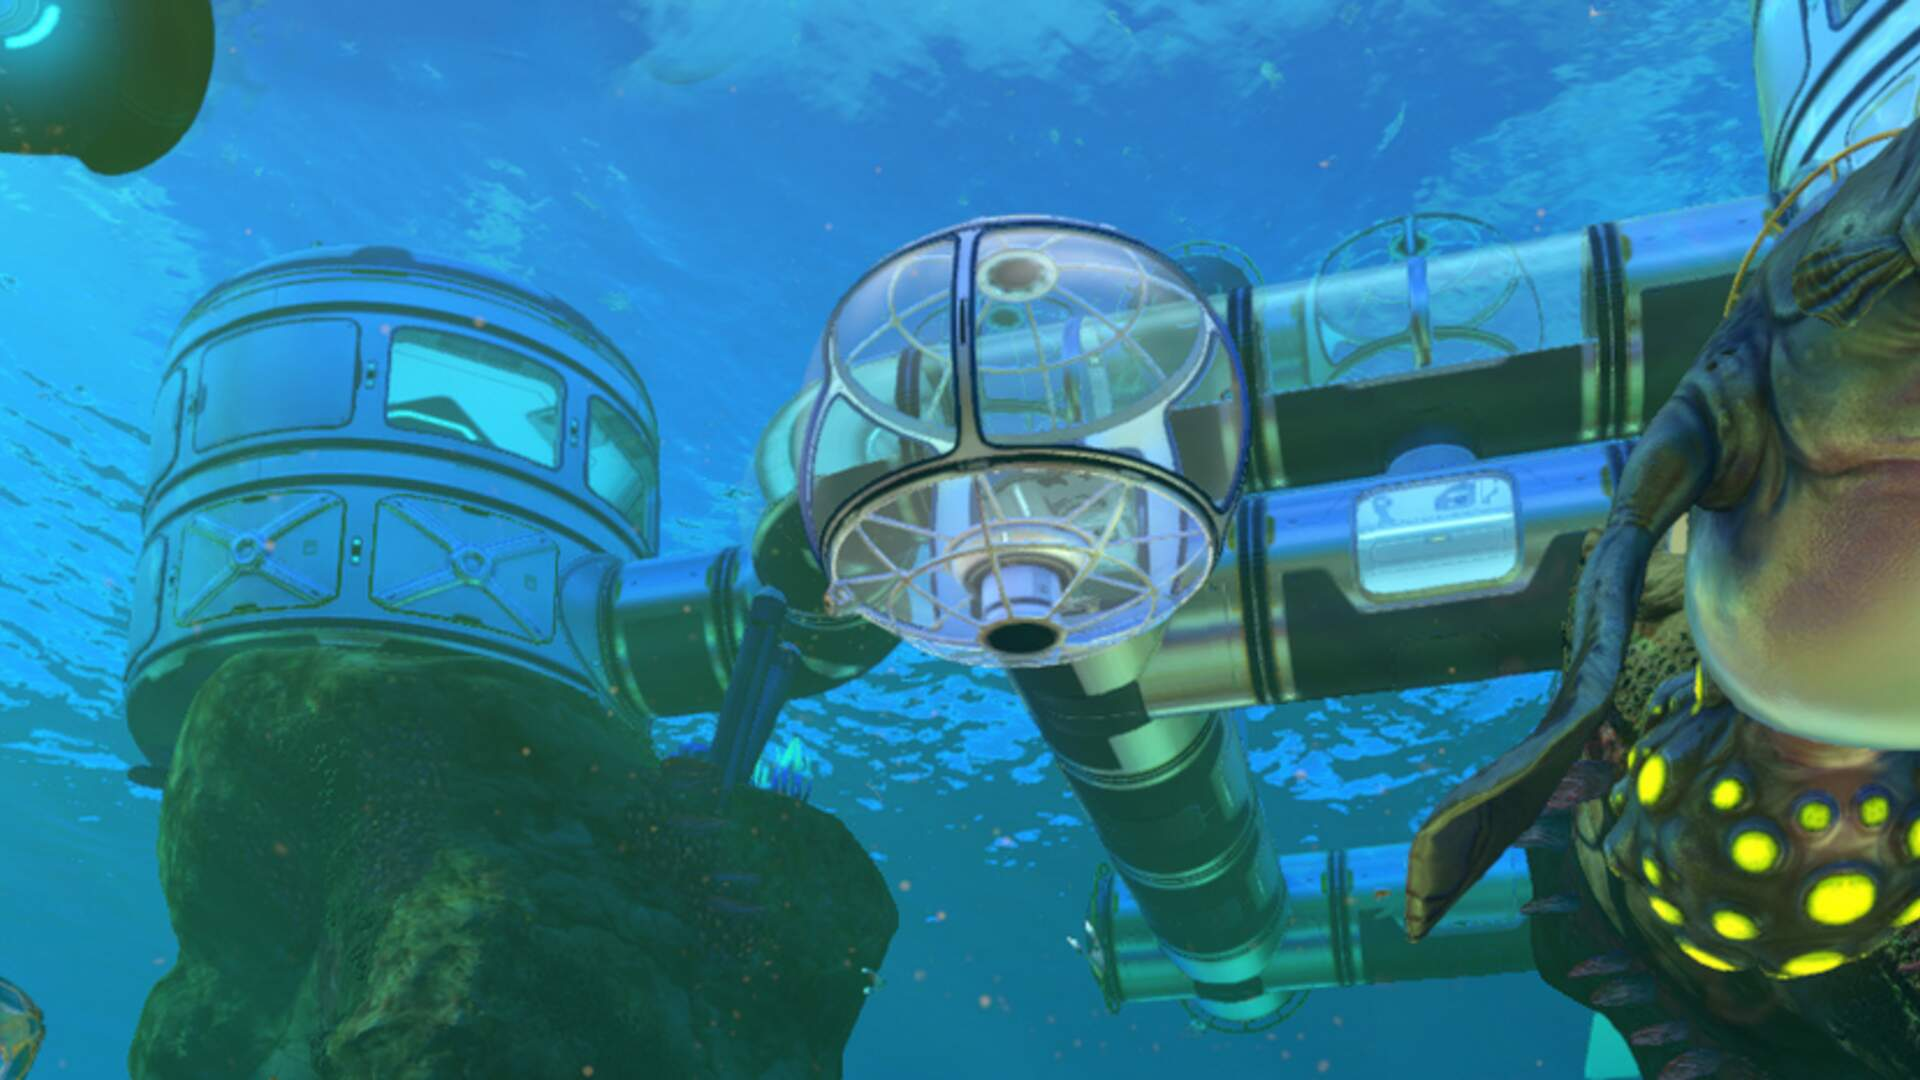 Subnautica Sound Designer Fired Over Controversial Tweets